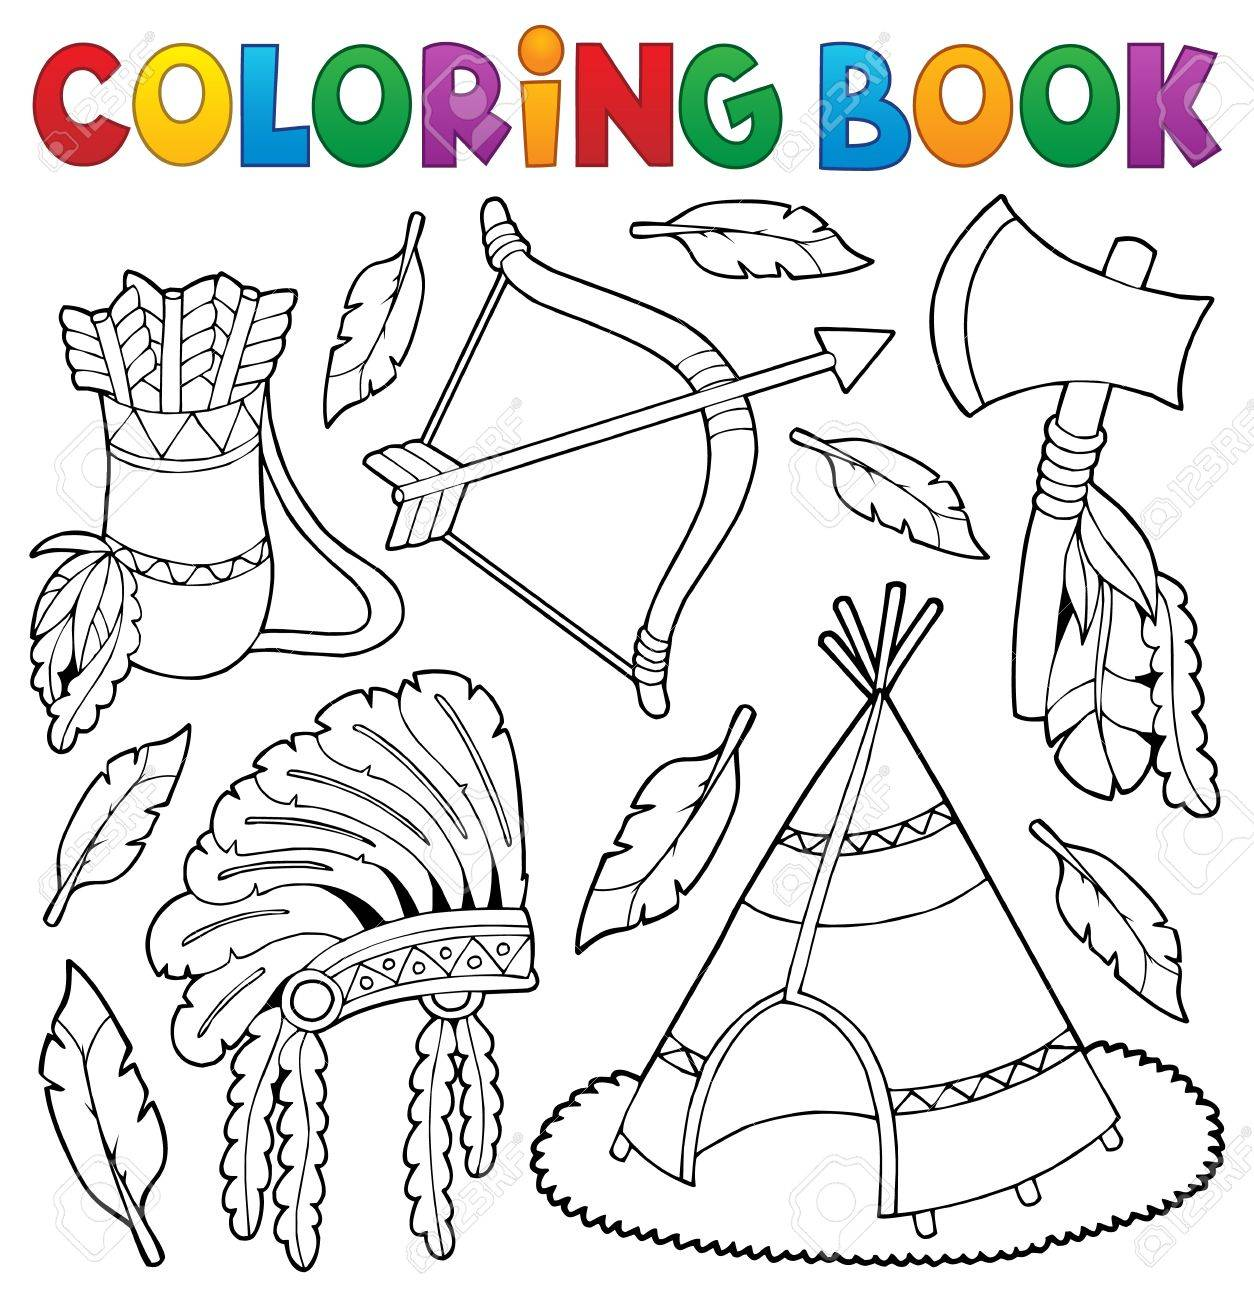 coloring book native american theme 1 eps10 vector illustration stock vector 81993175 - Native American Coloring Book